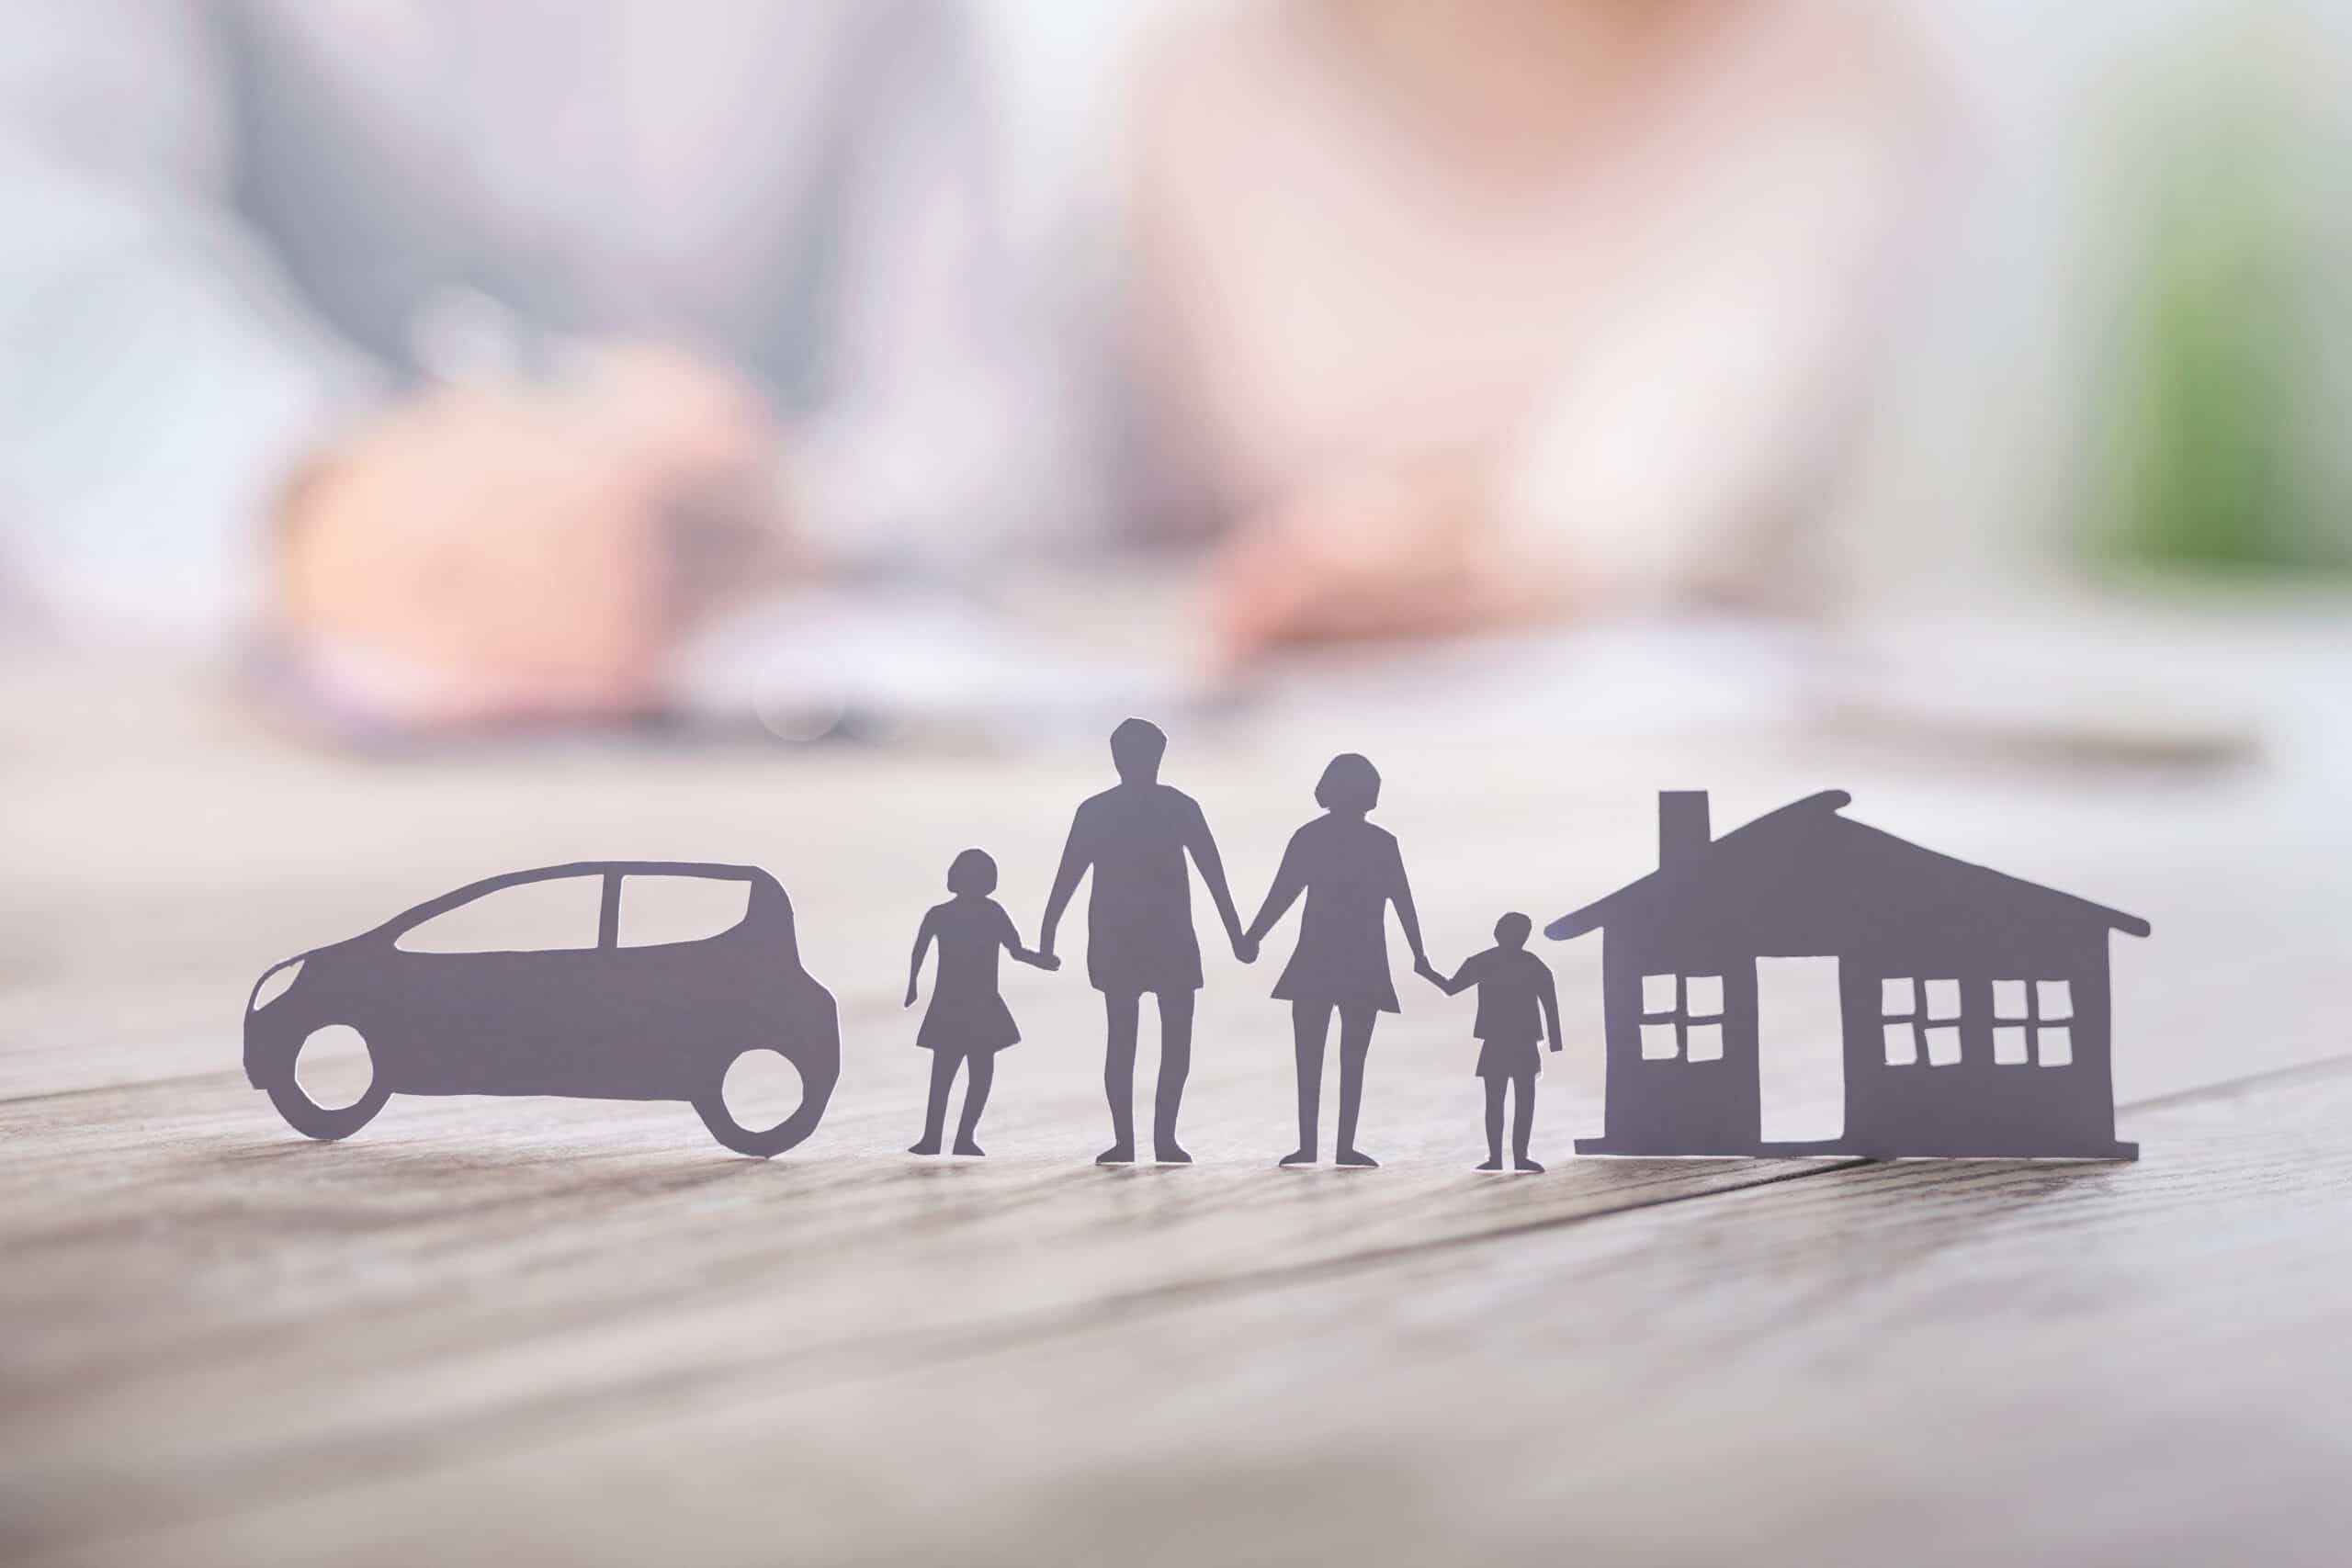 Paper Cut-outs Of A Family, Car, And House